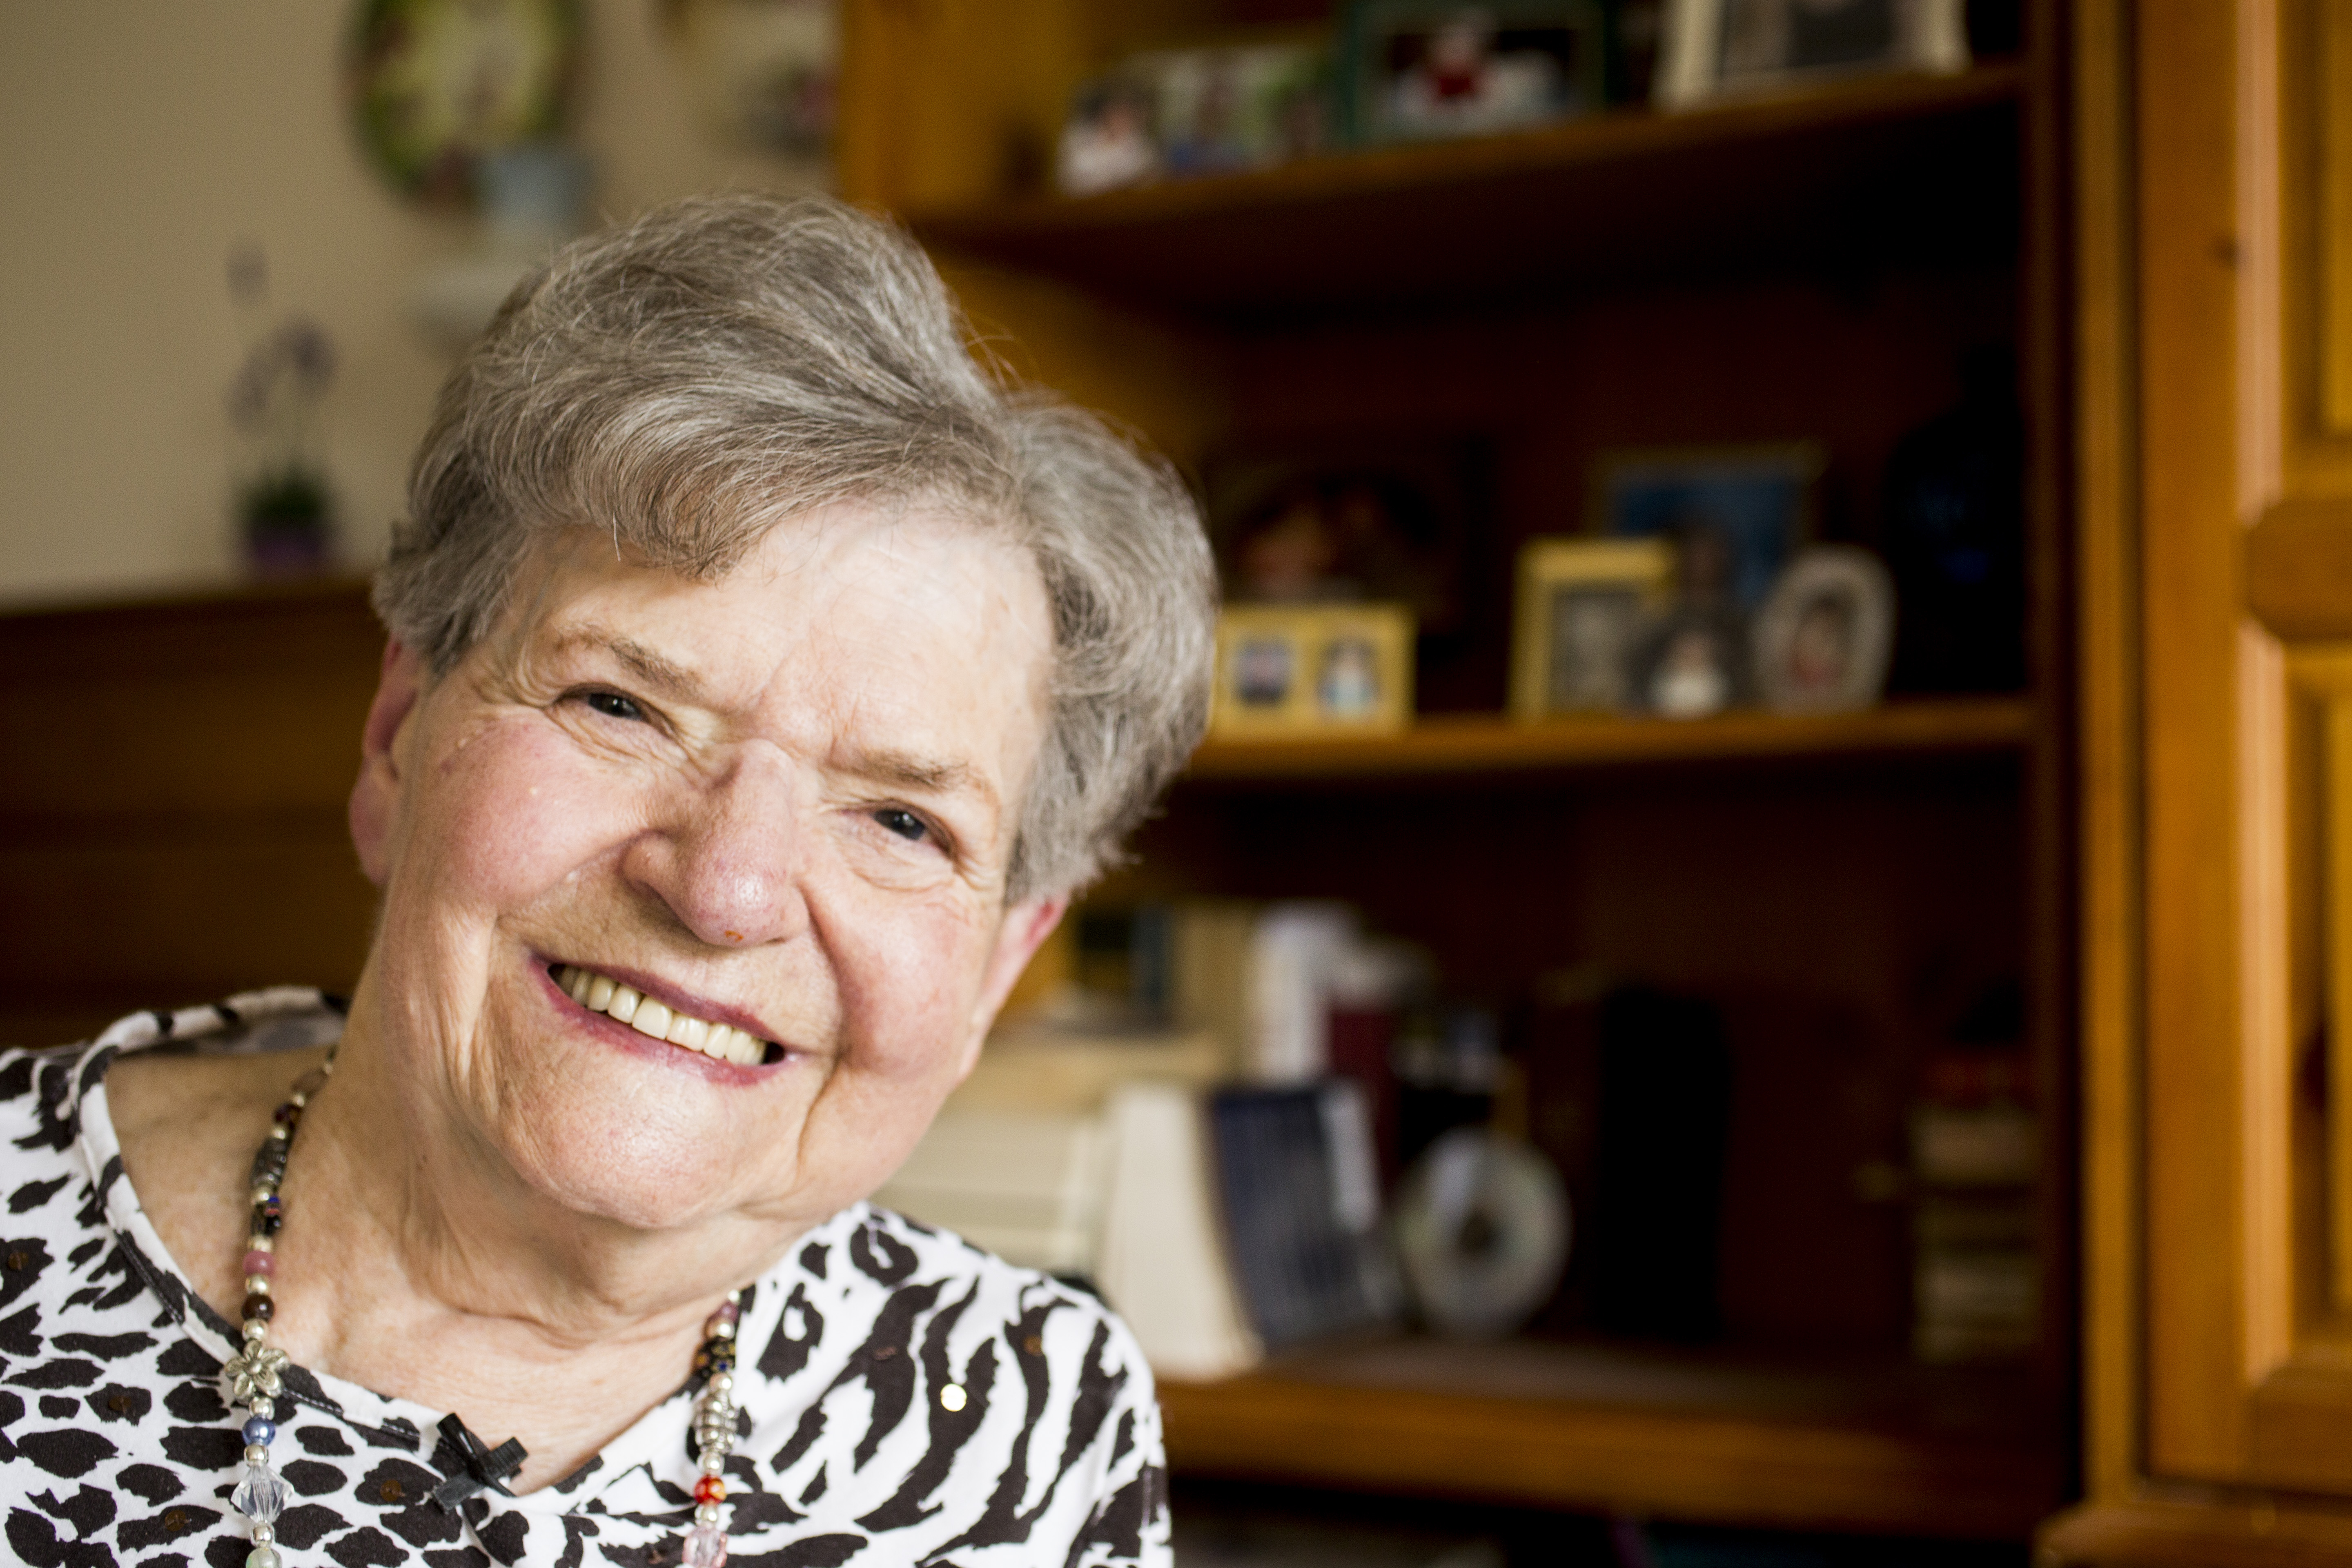 elderly woman smiling at camera in room with bookcase of pictures in background